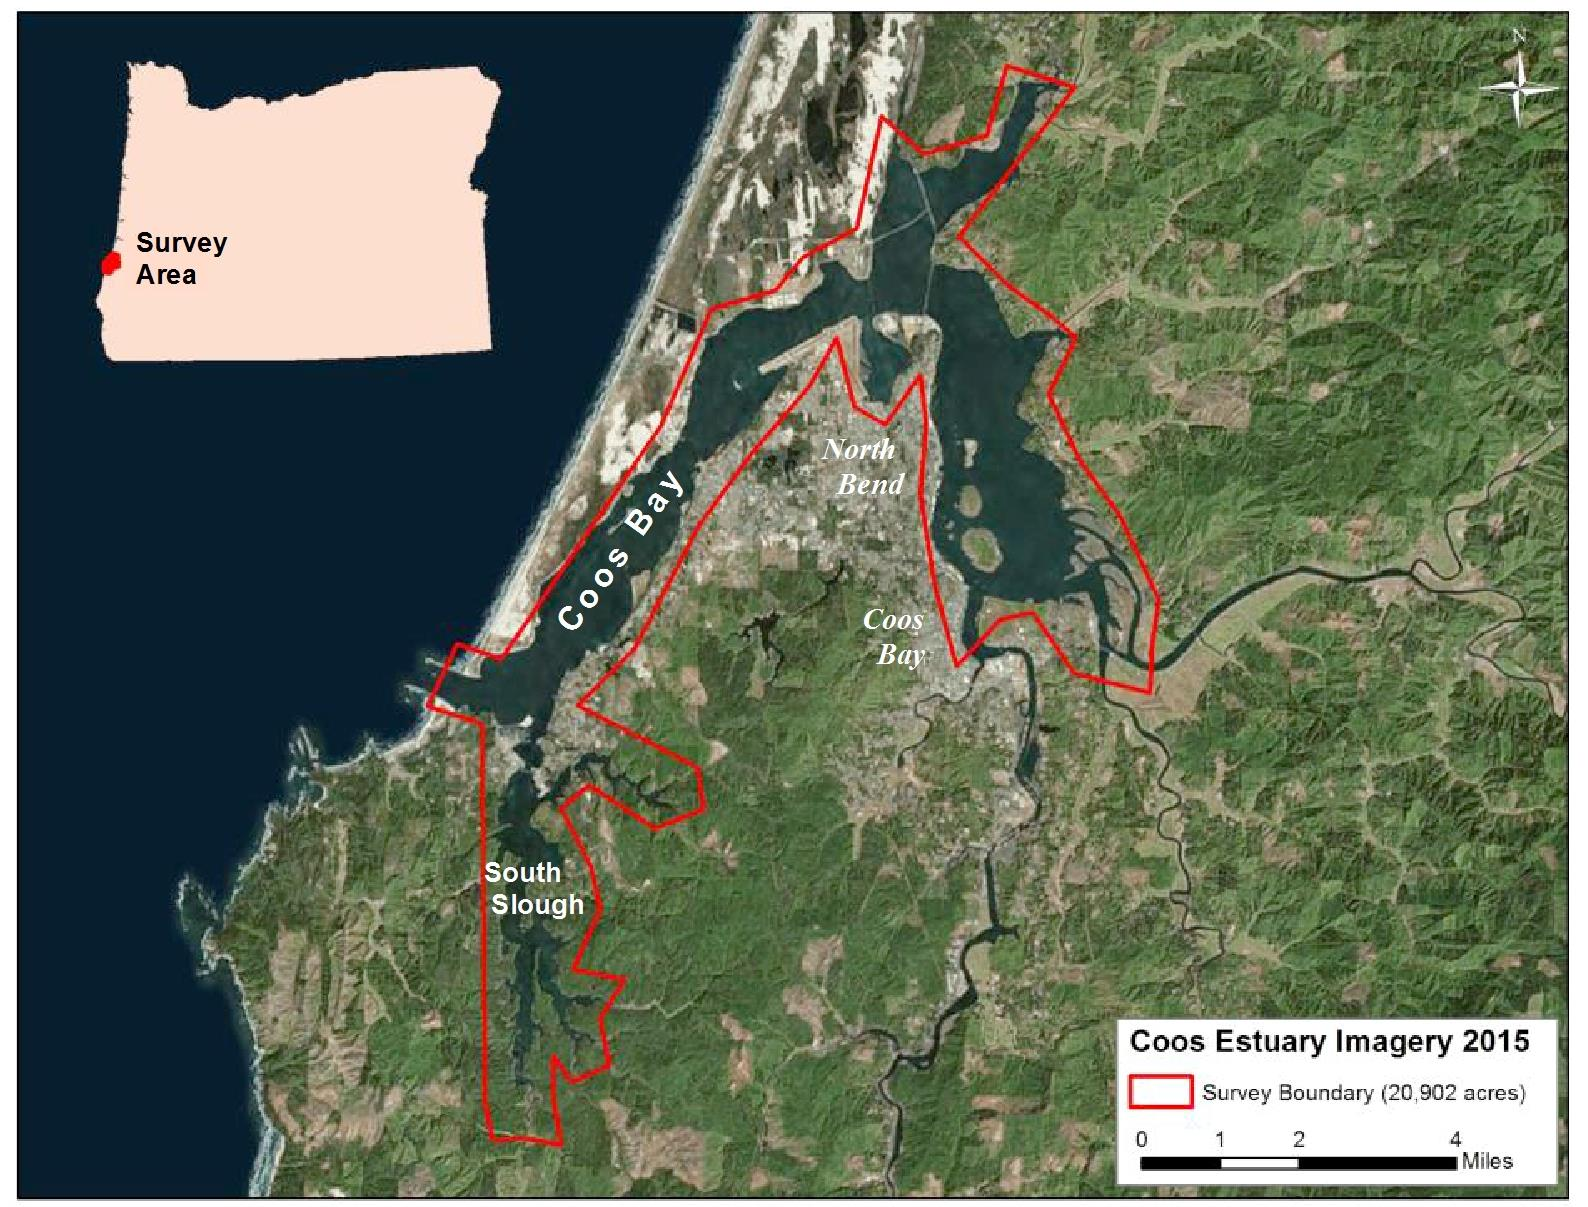 Eelgrass mapping of the Coos Estuary, Coos Bay, OR (2016)